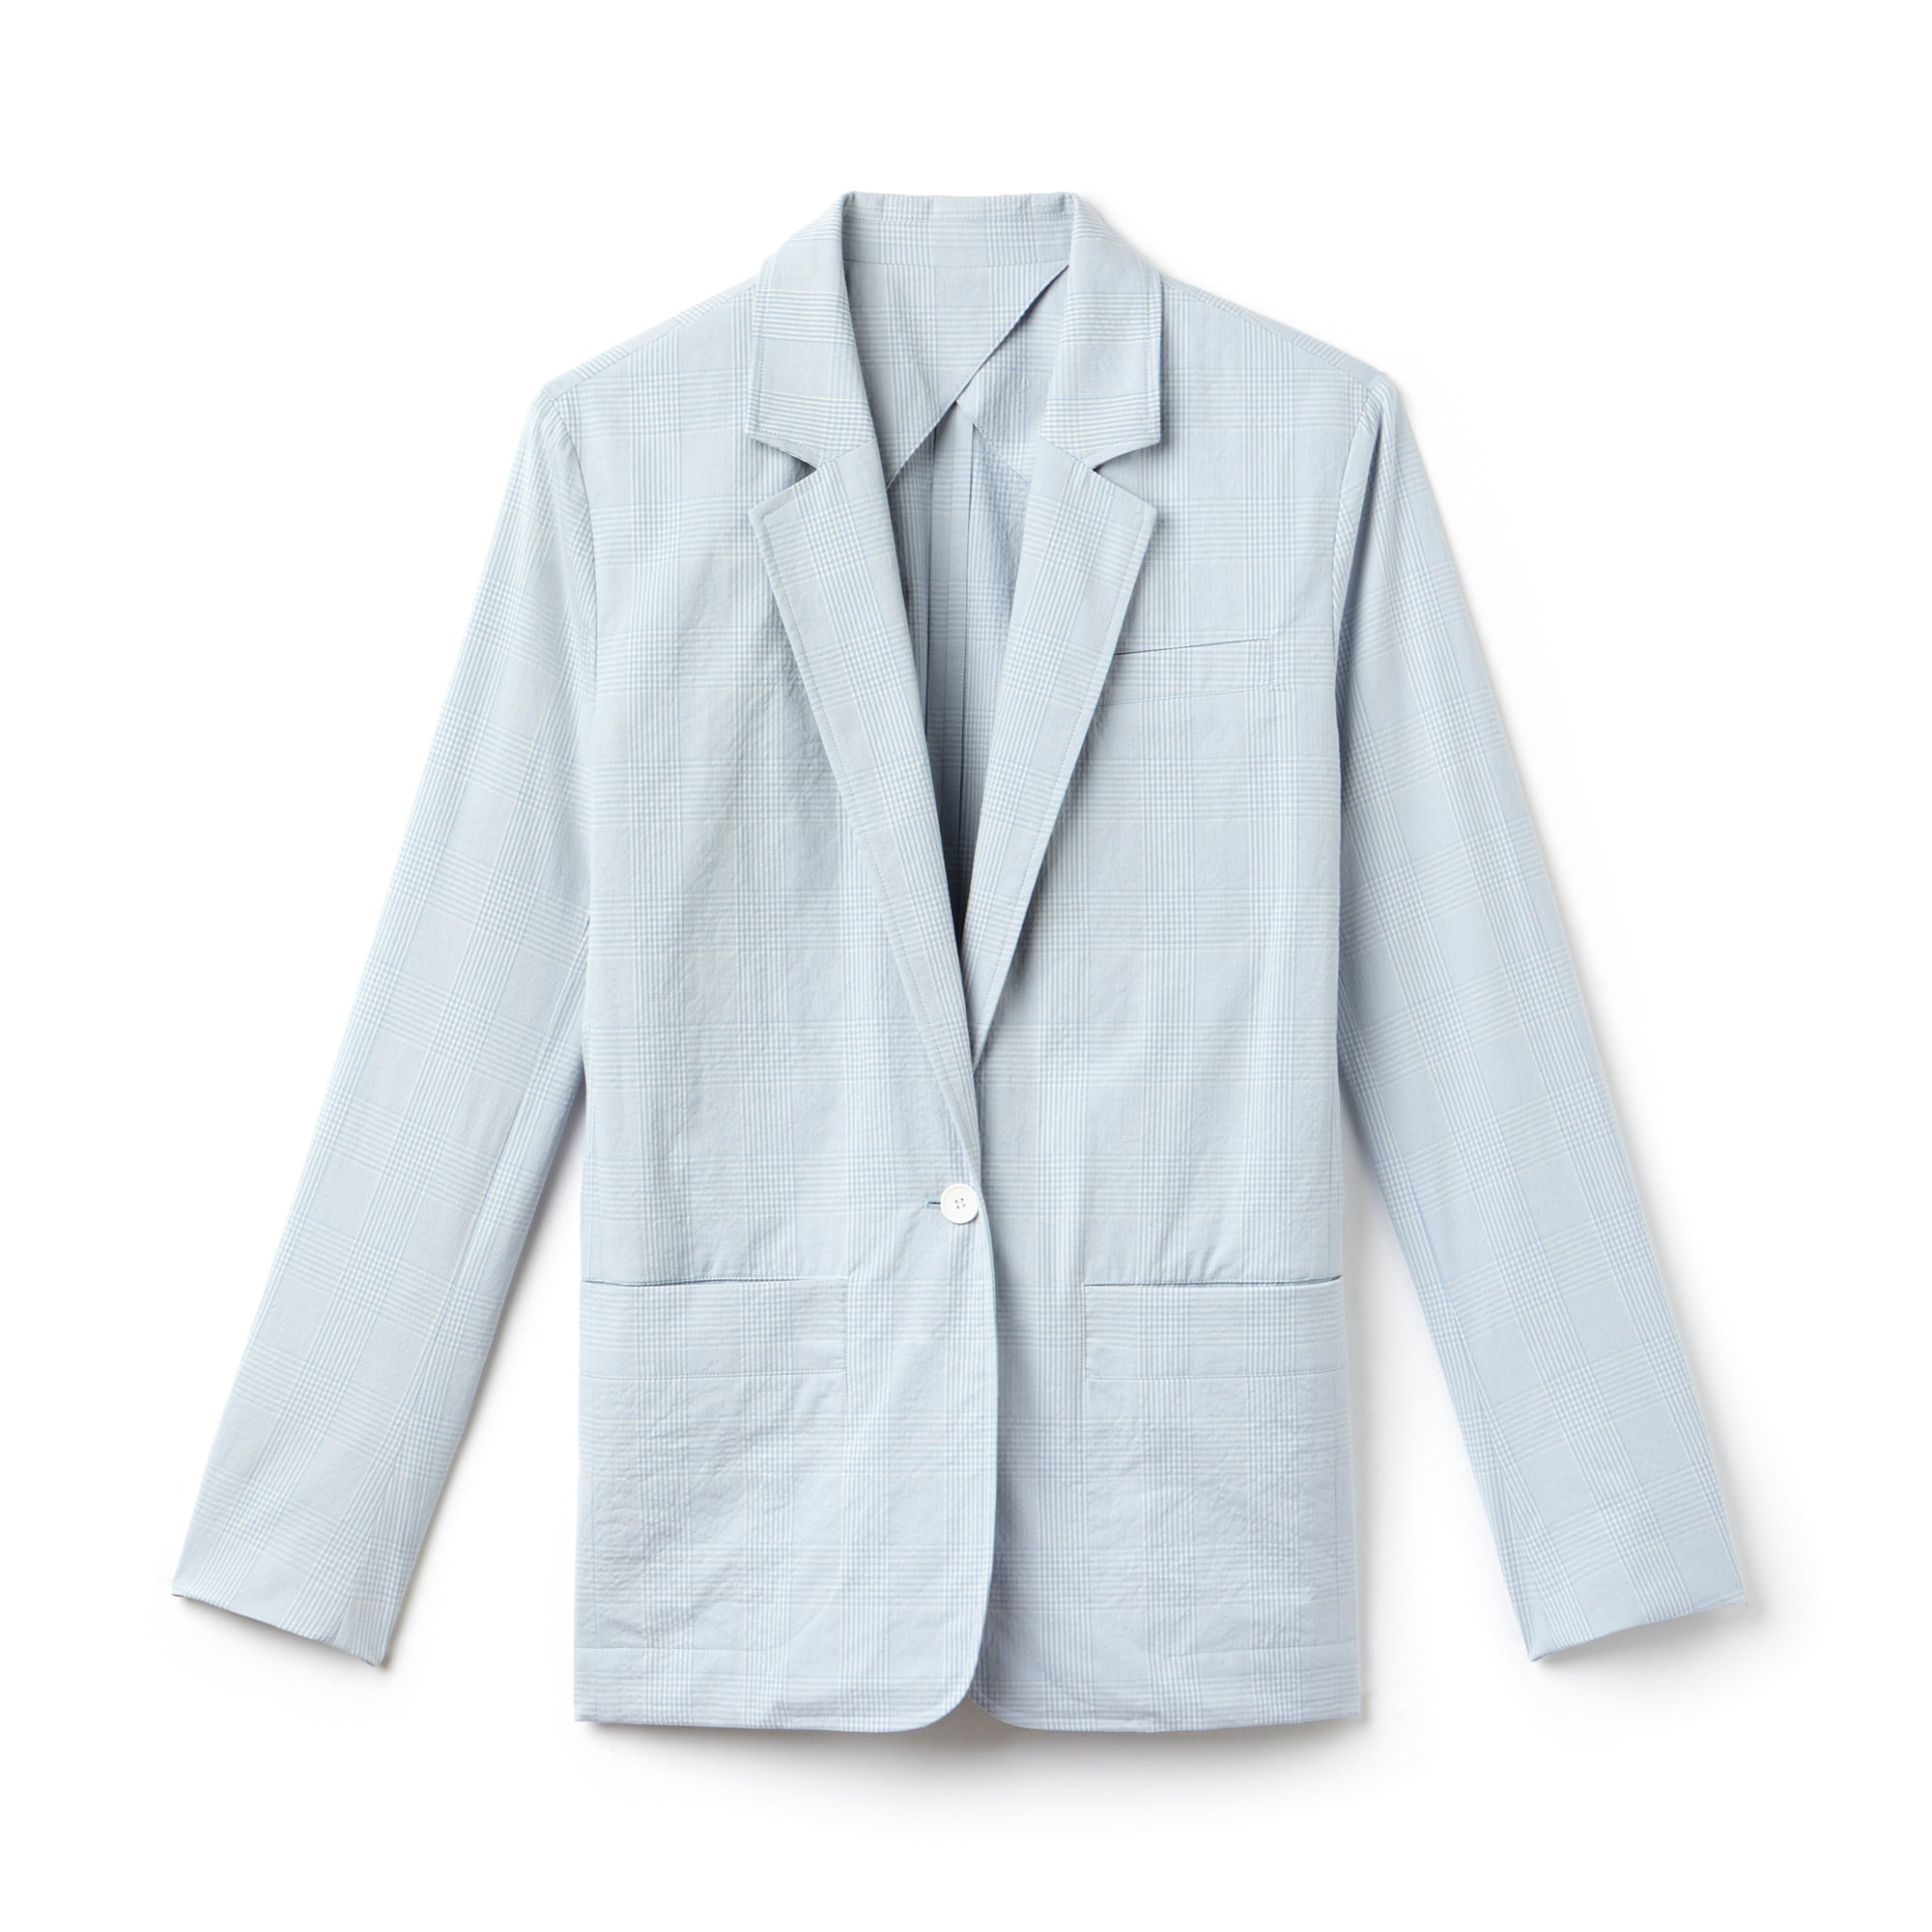 Women's Fashion Show Seersucker Blazer